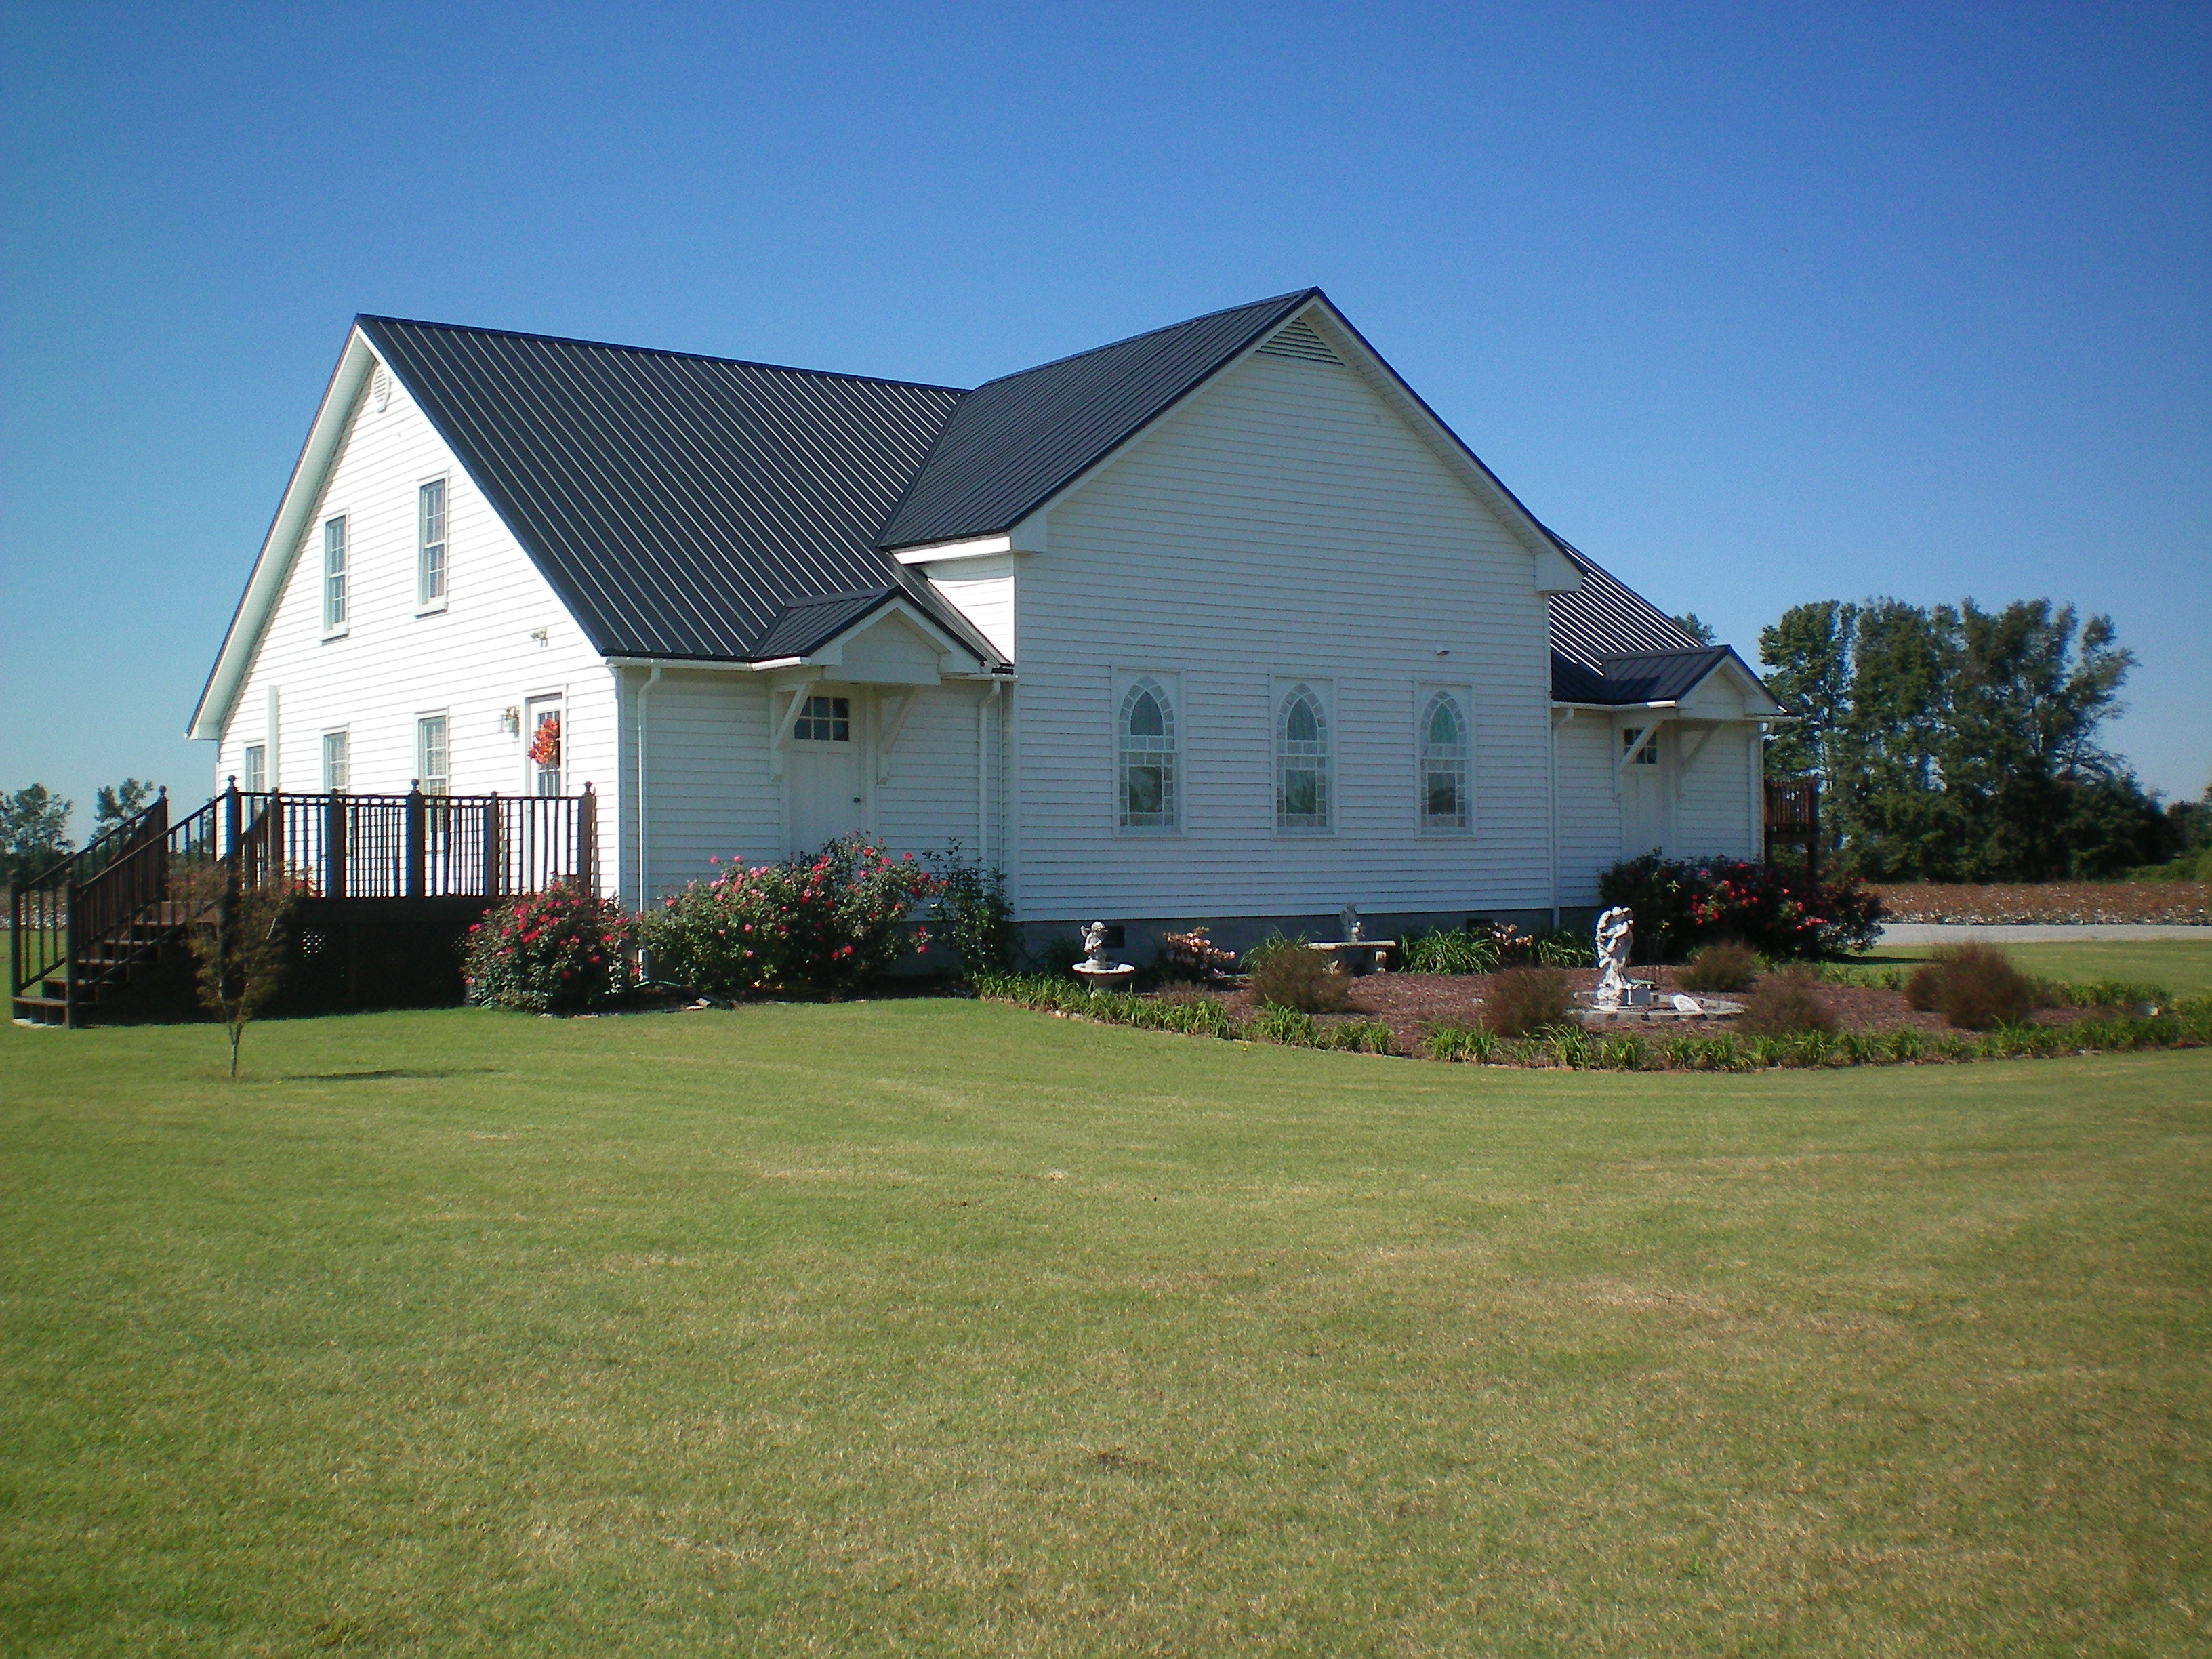 Heritage Hall is an event venue at Hamstead Acres located in LaGrange in Eastern North Carolina